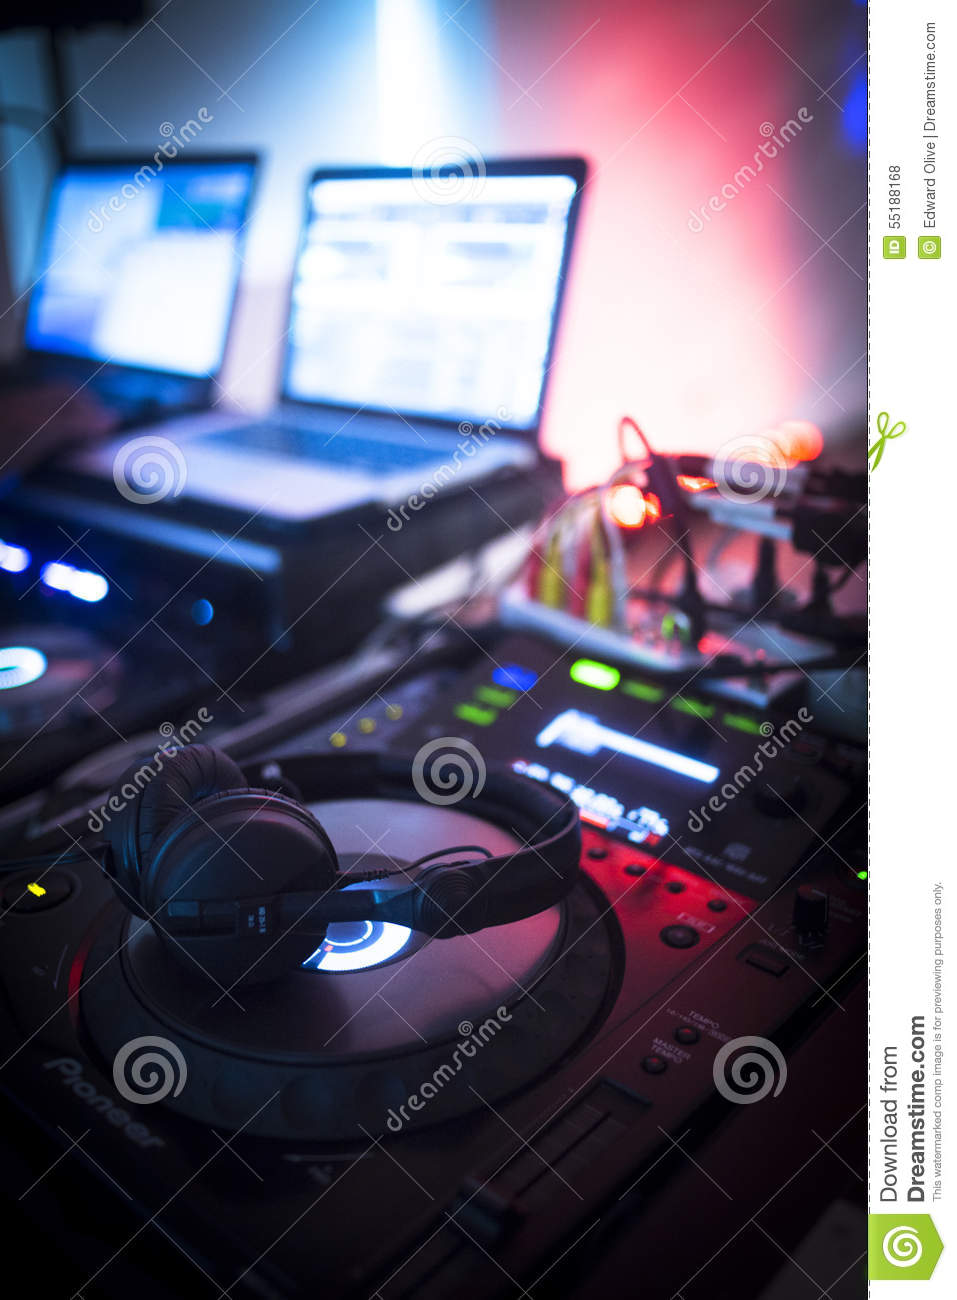 Dj console mixing desk ibiza house music party nightclub for House music images